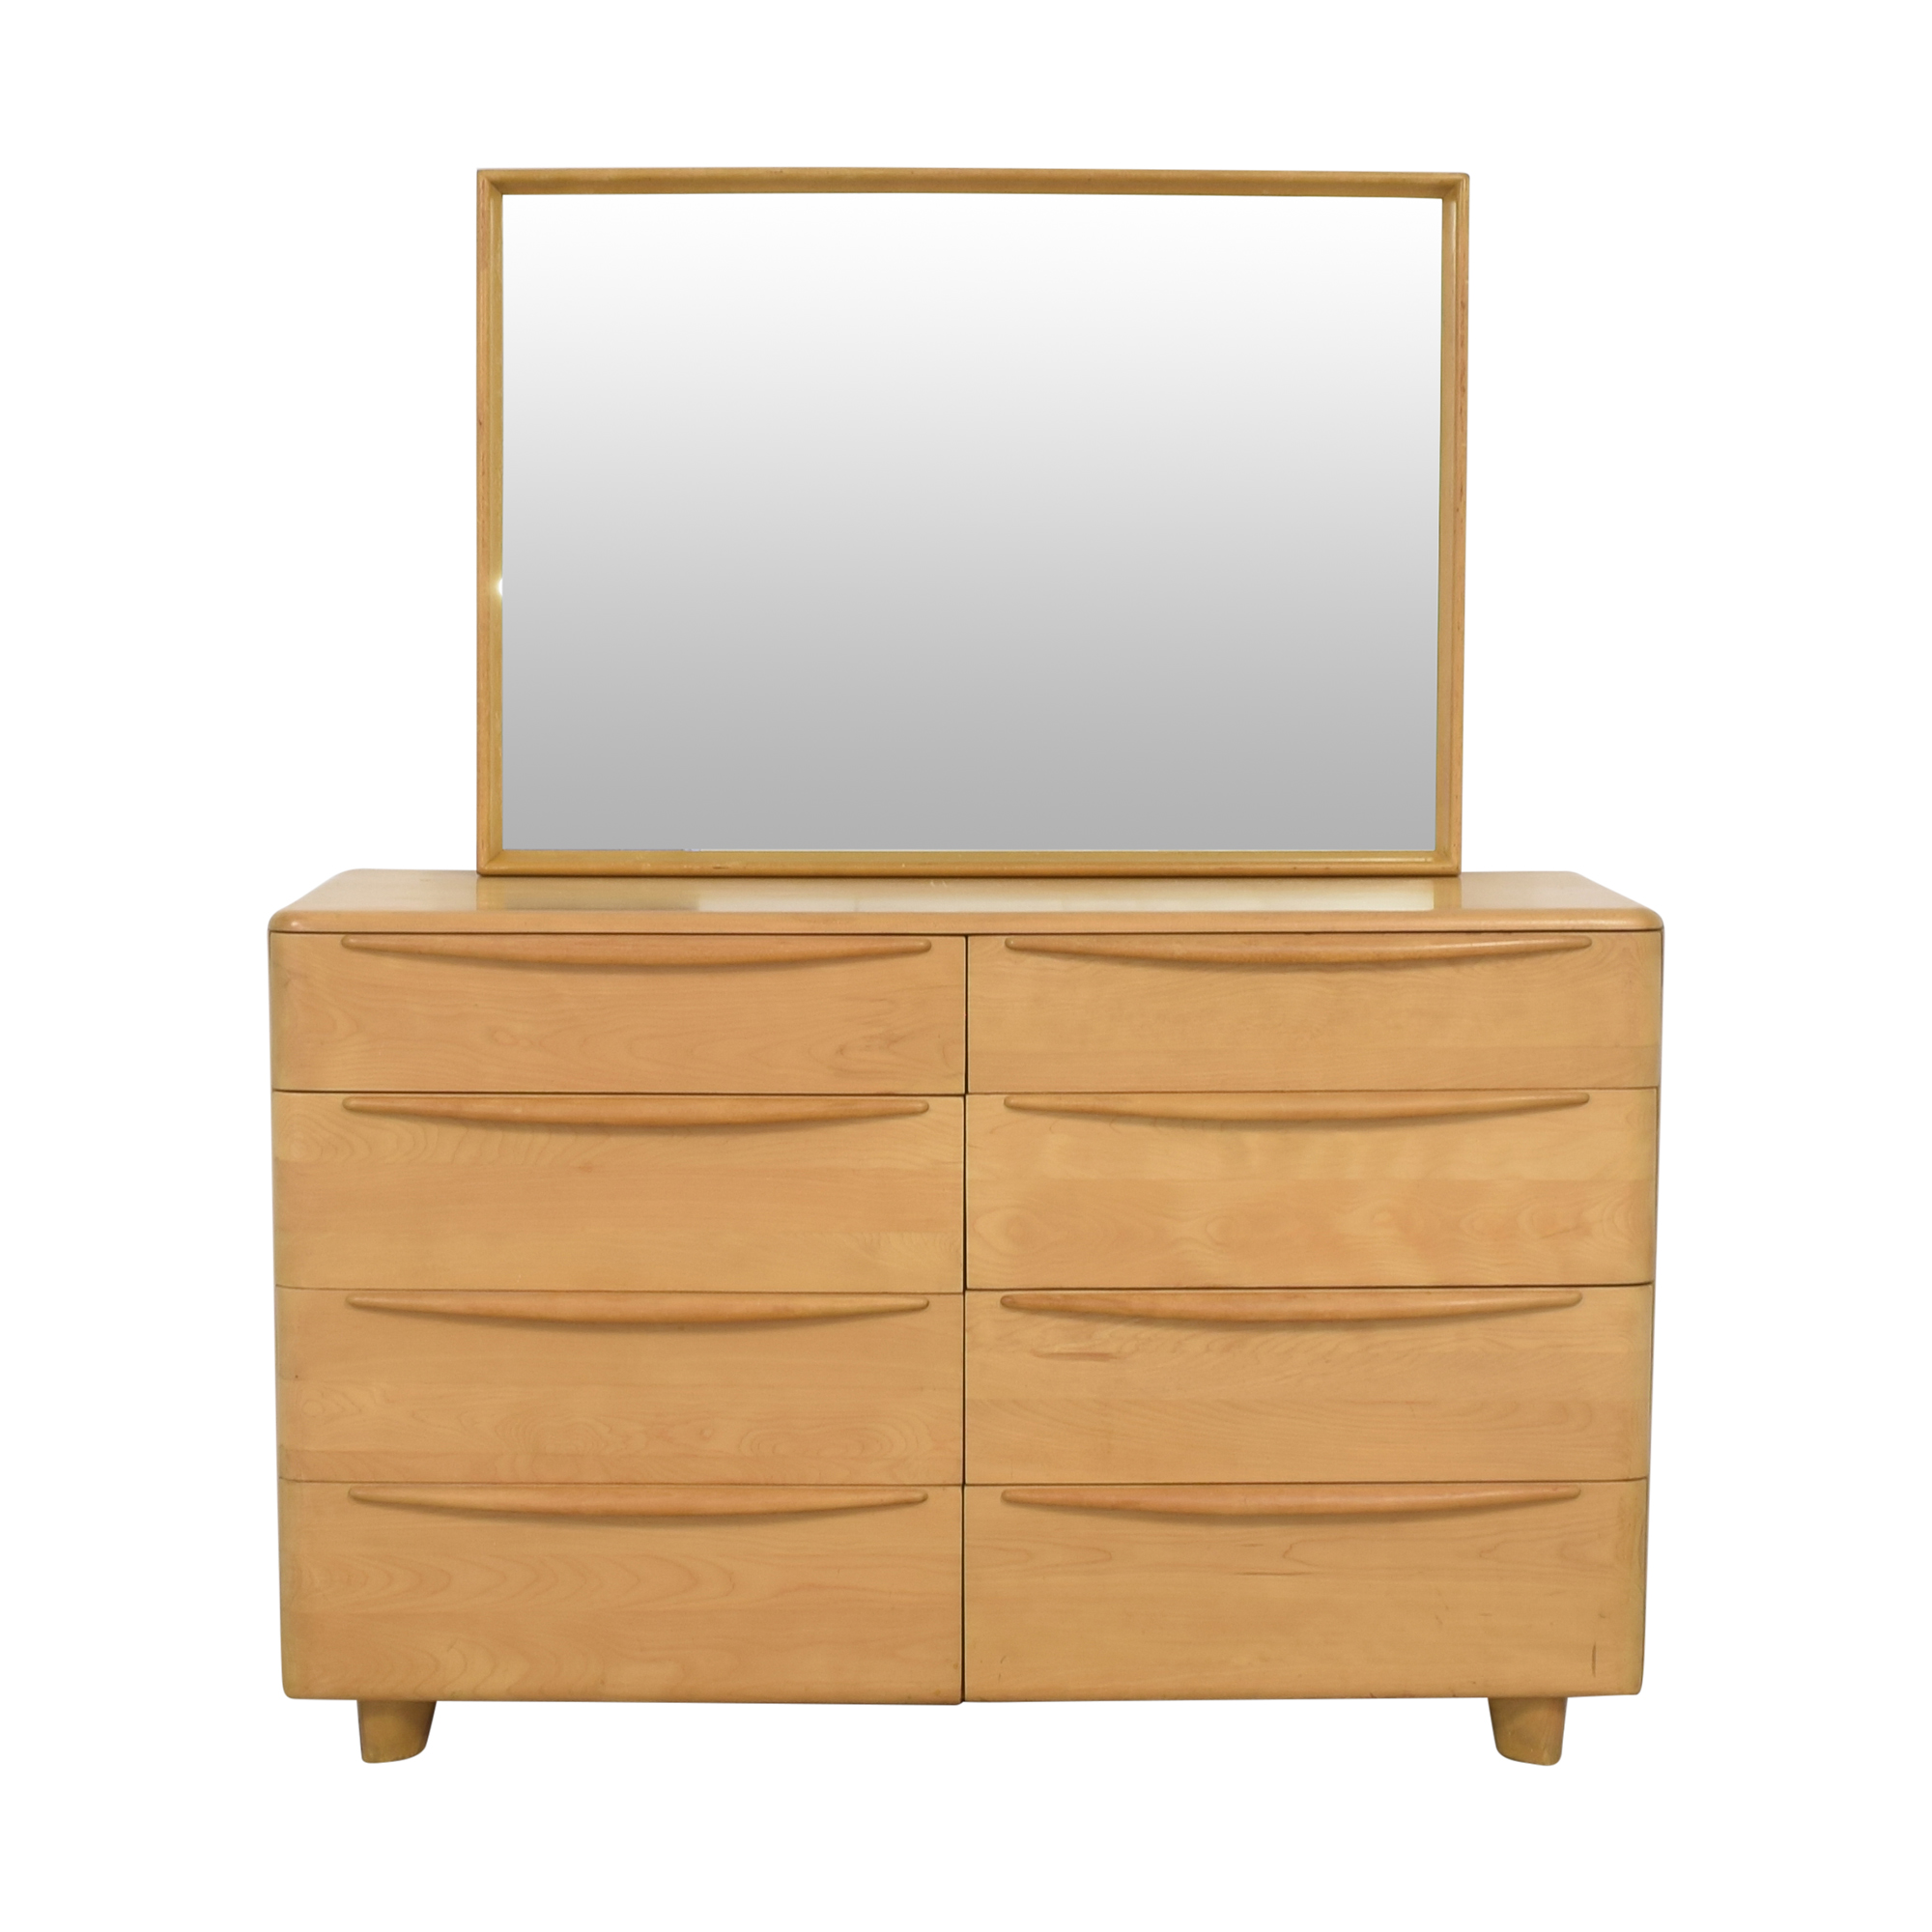 Heywood-Wakefield Heywood-Wakefield Encore Eight Drawer Dresser with Mirror nyc